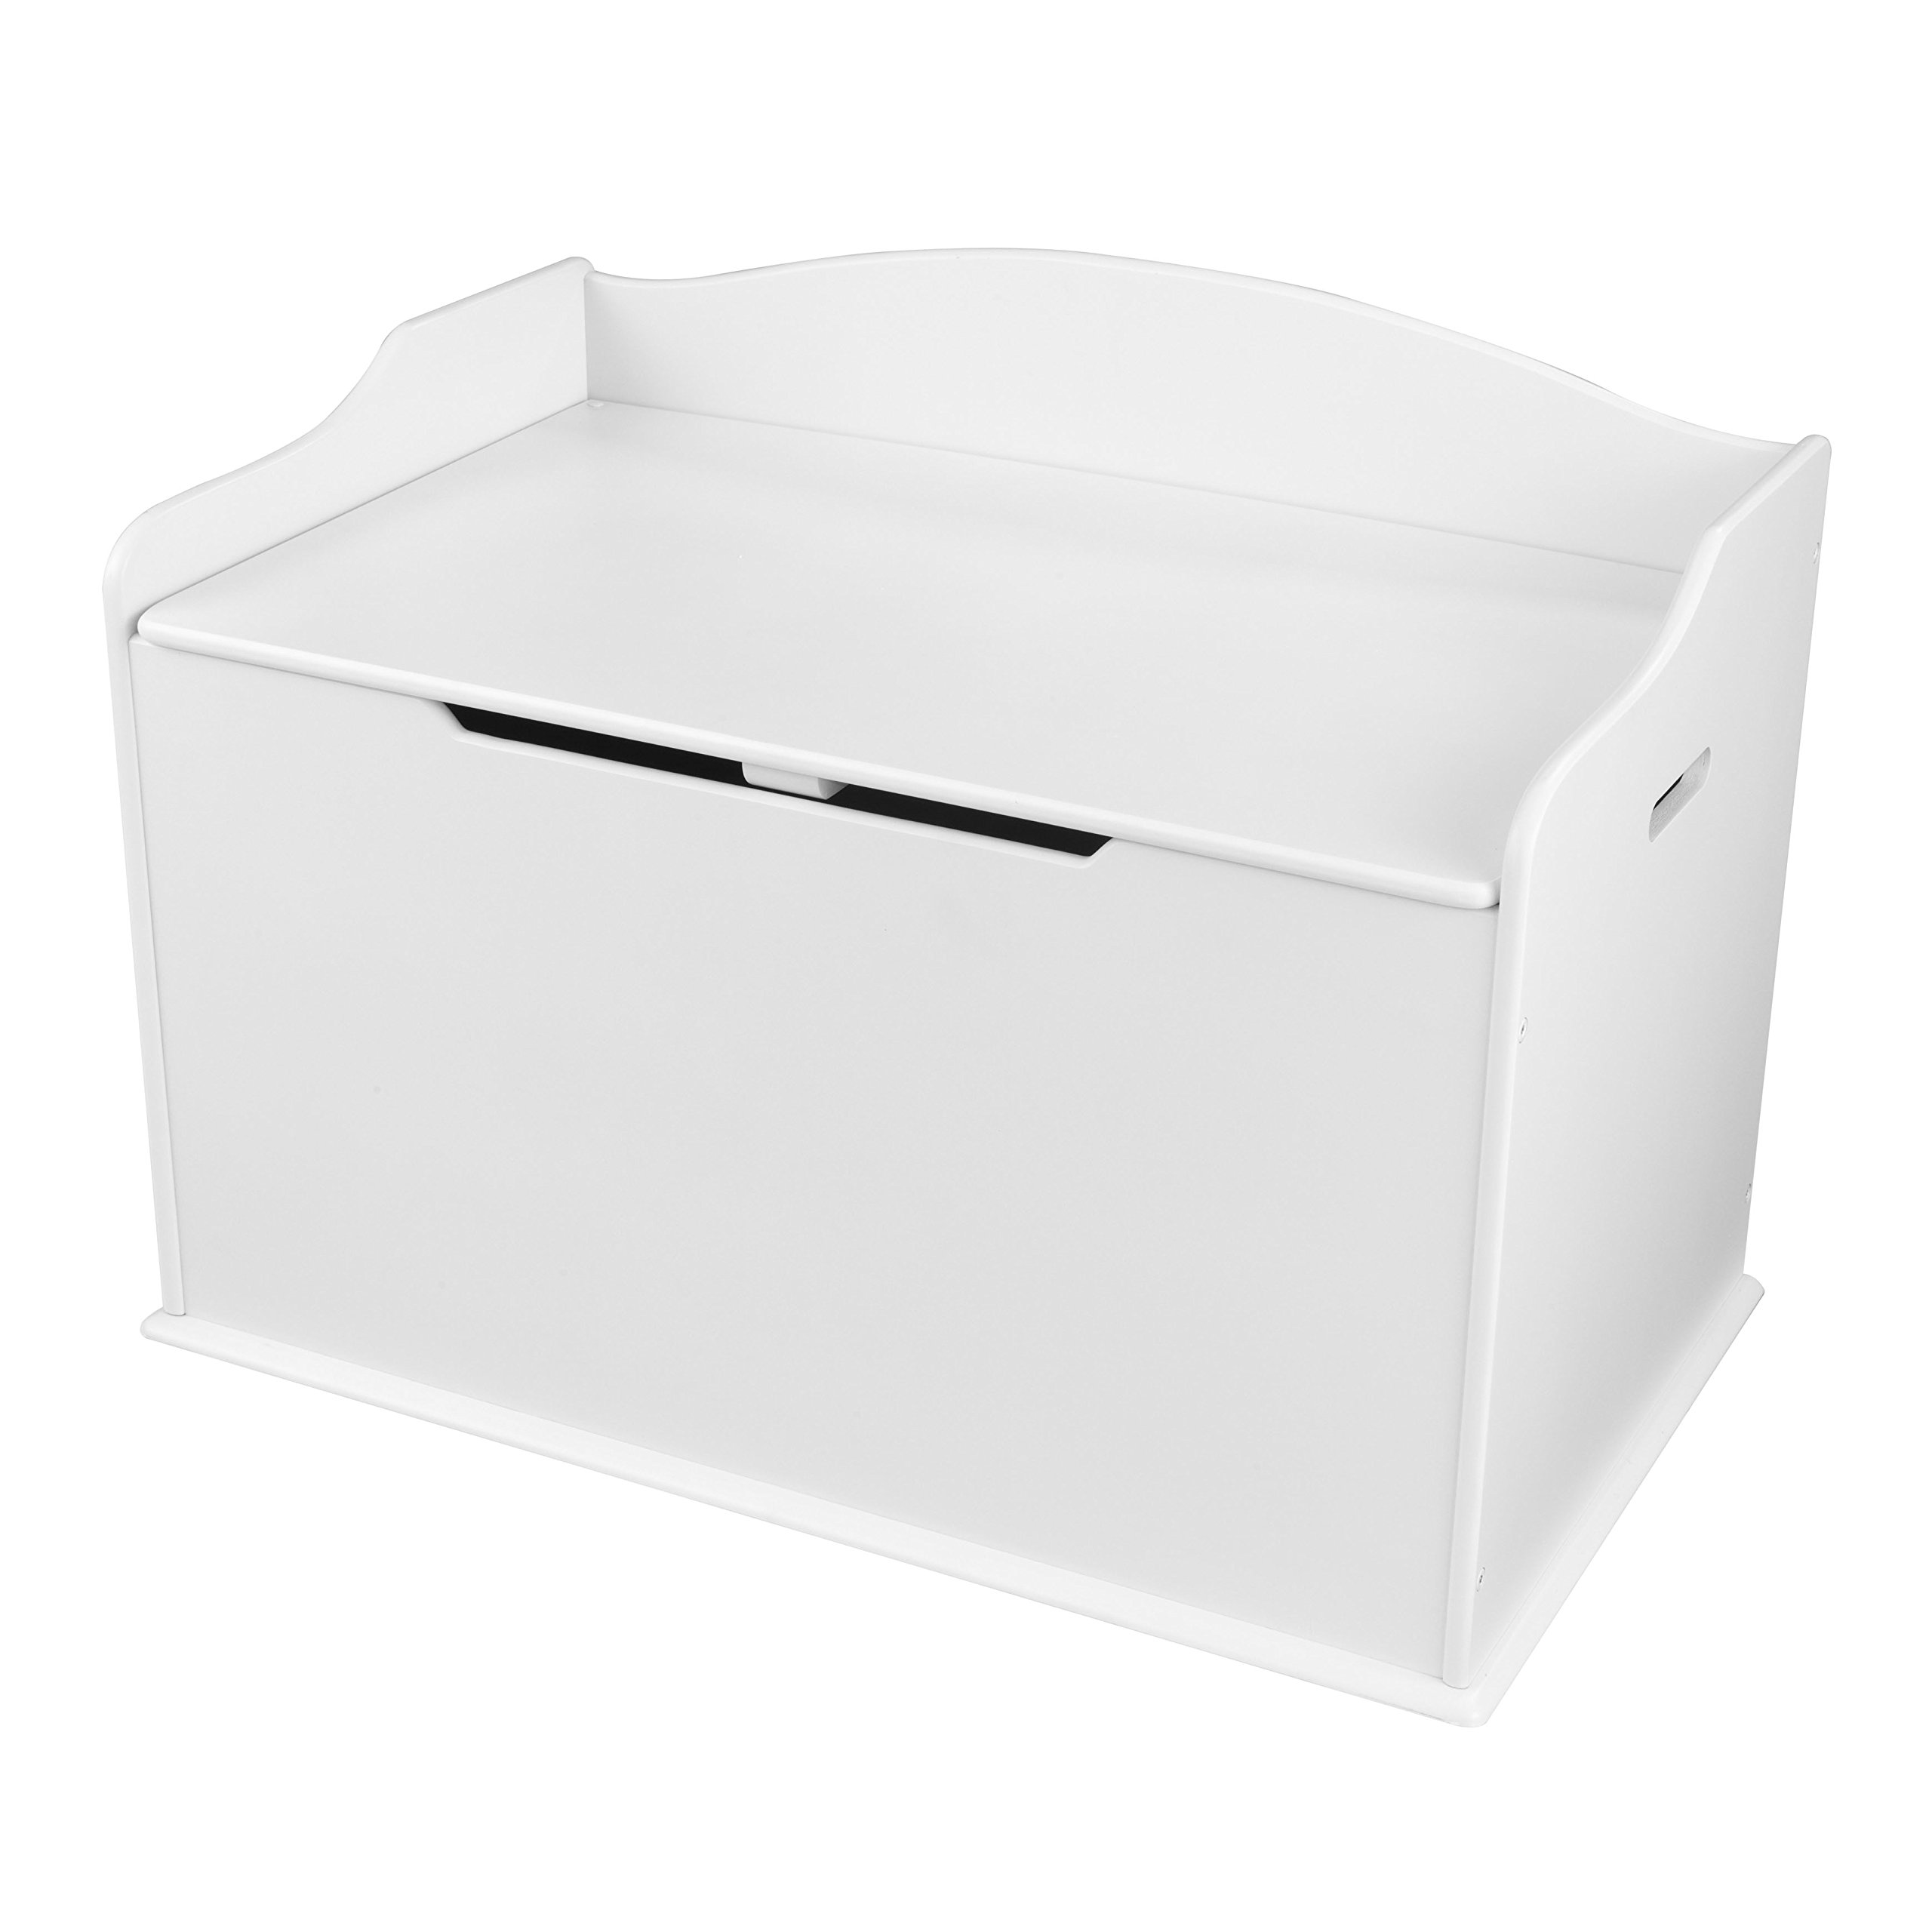 KidKraft Austin Toy Box, White by KidKraft